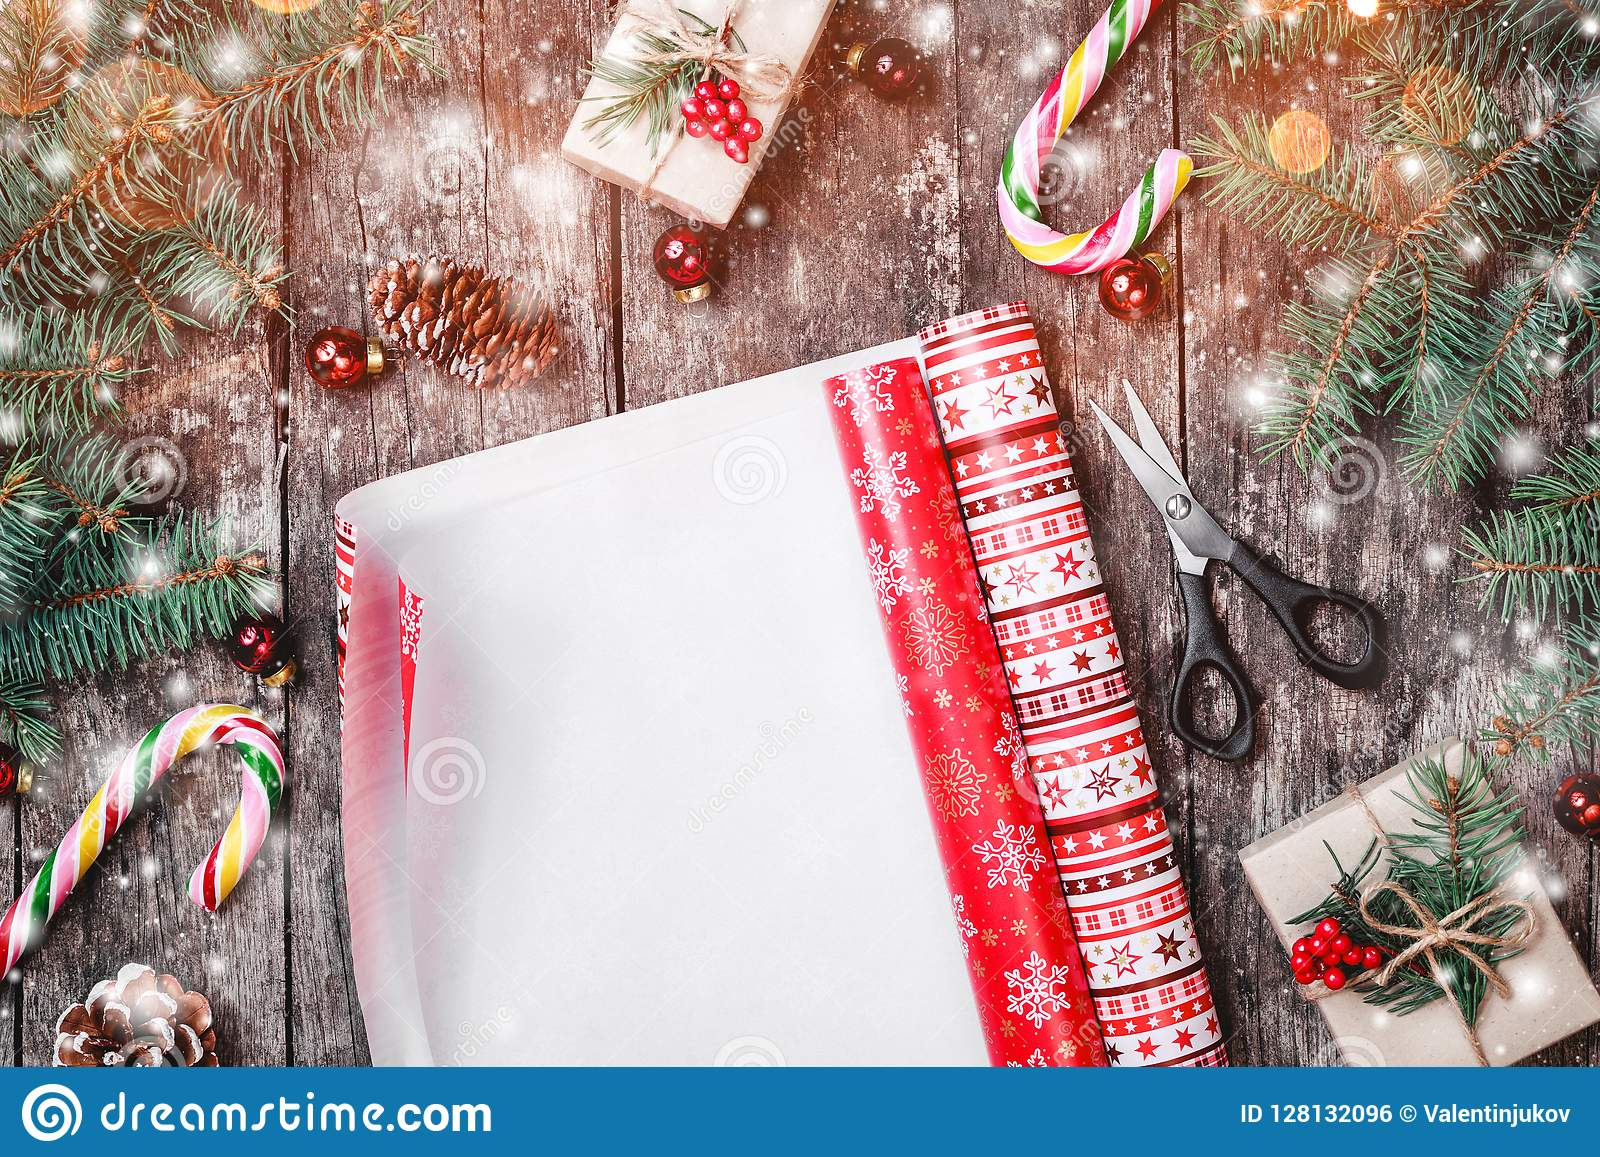 Christmas composition with xmas wrapping, Fir branches, gifts, pine cones, red decorations on wooden background.